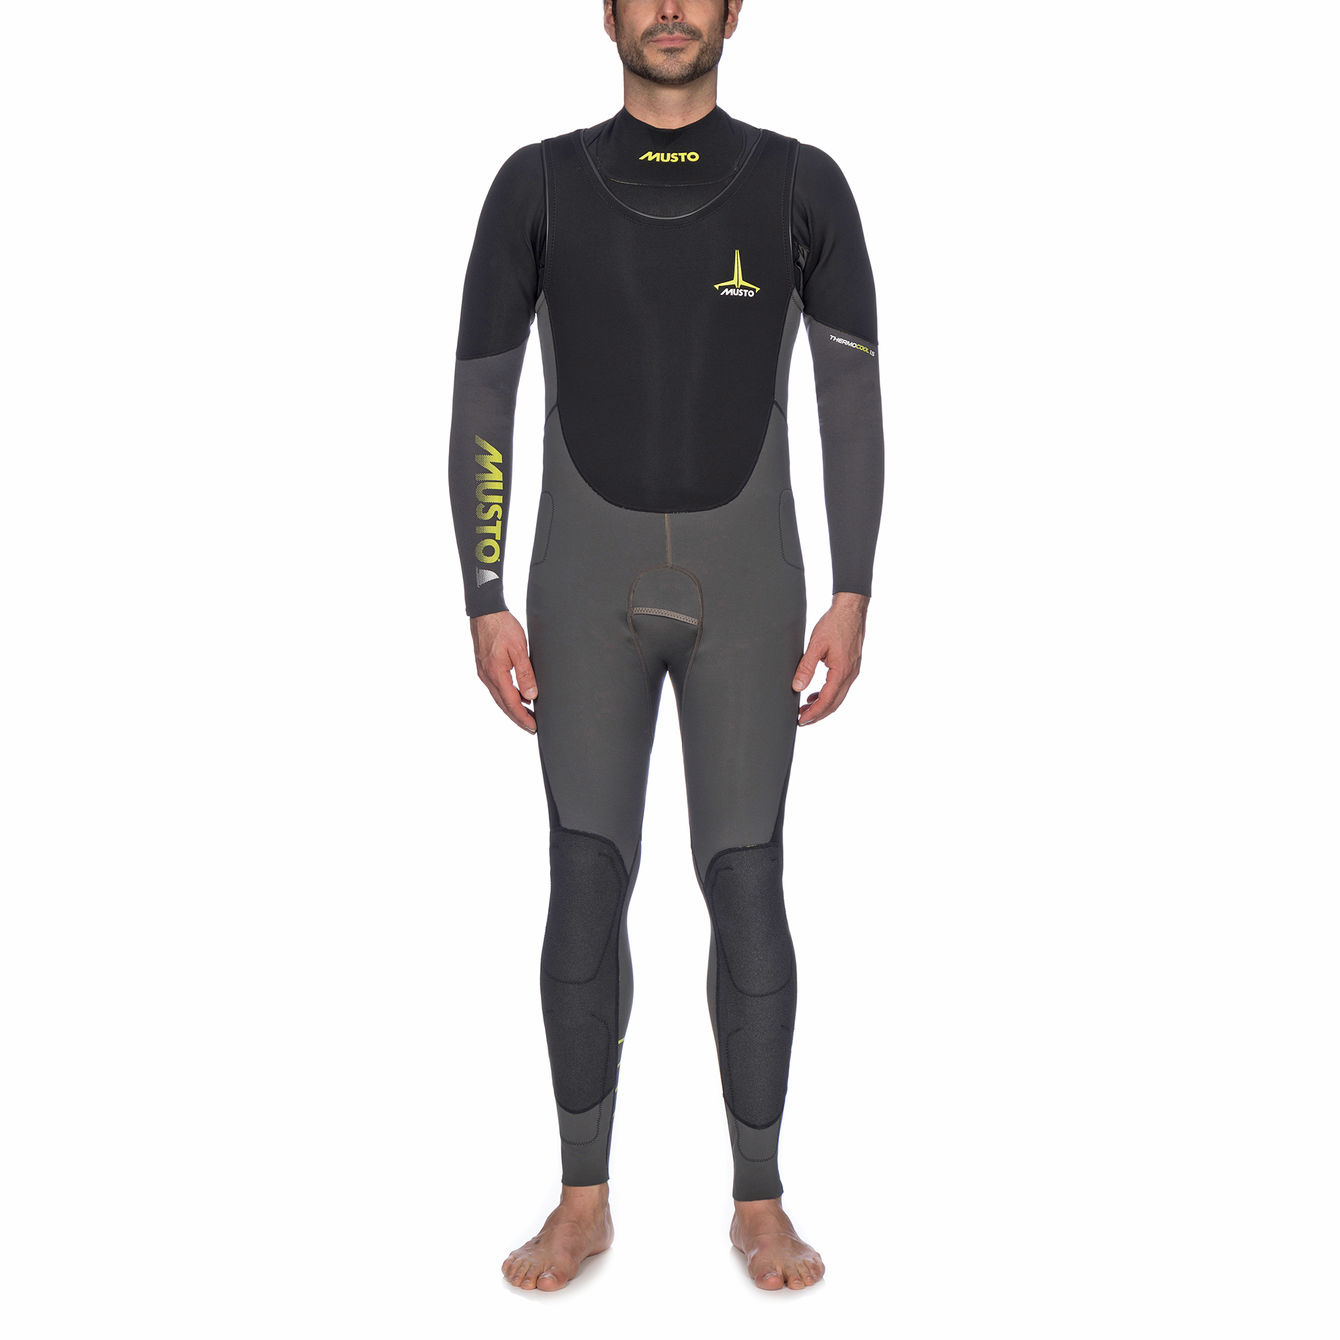 Foiling Thermocool Impact Wetsuit Review